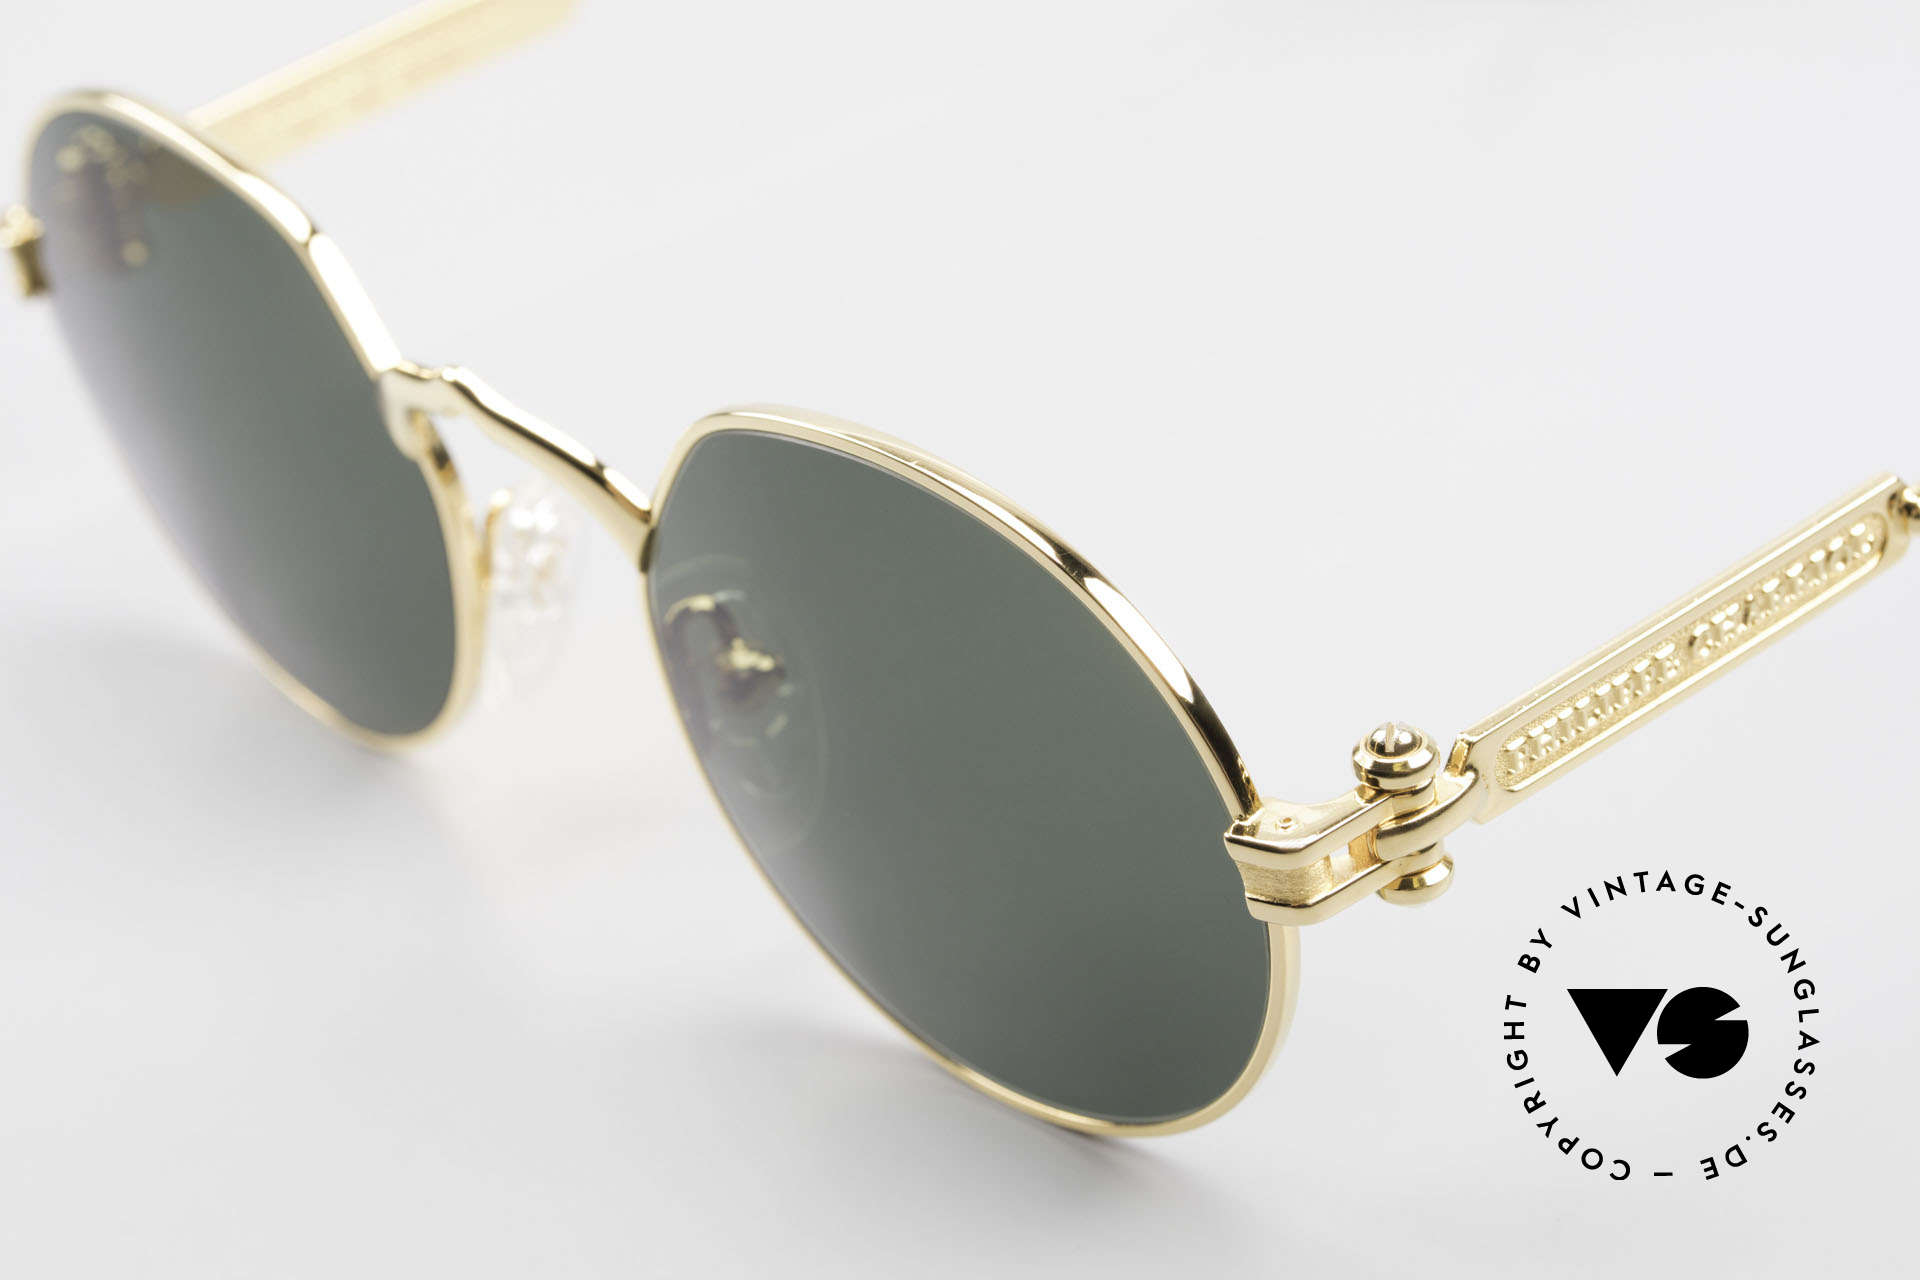 """Philippe Charriol 92CPT Insider Luxury Sunglasses 80's, for connoisseurs aside from the """"mainstream luxury"""", Made for Men"""